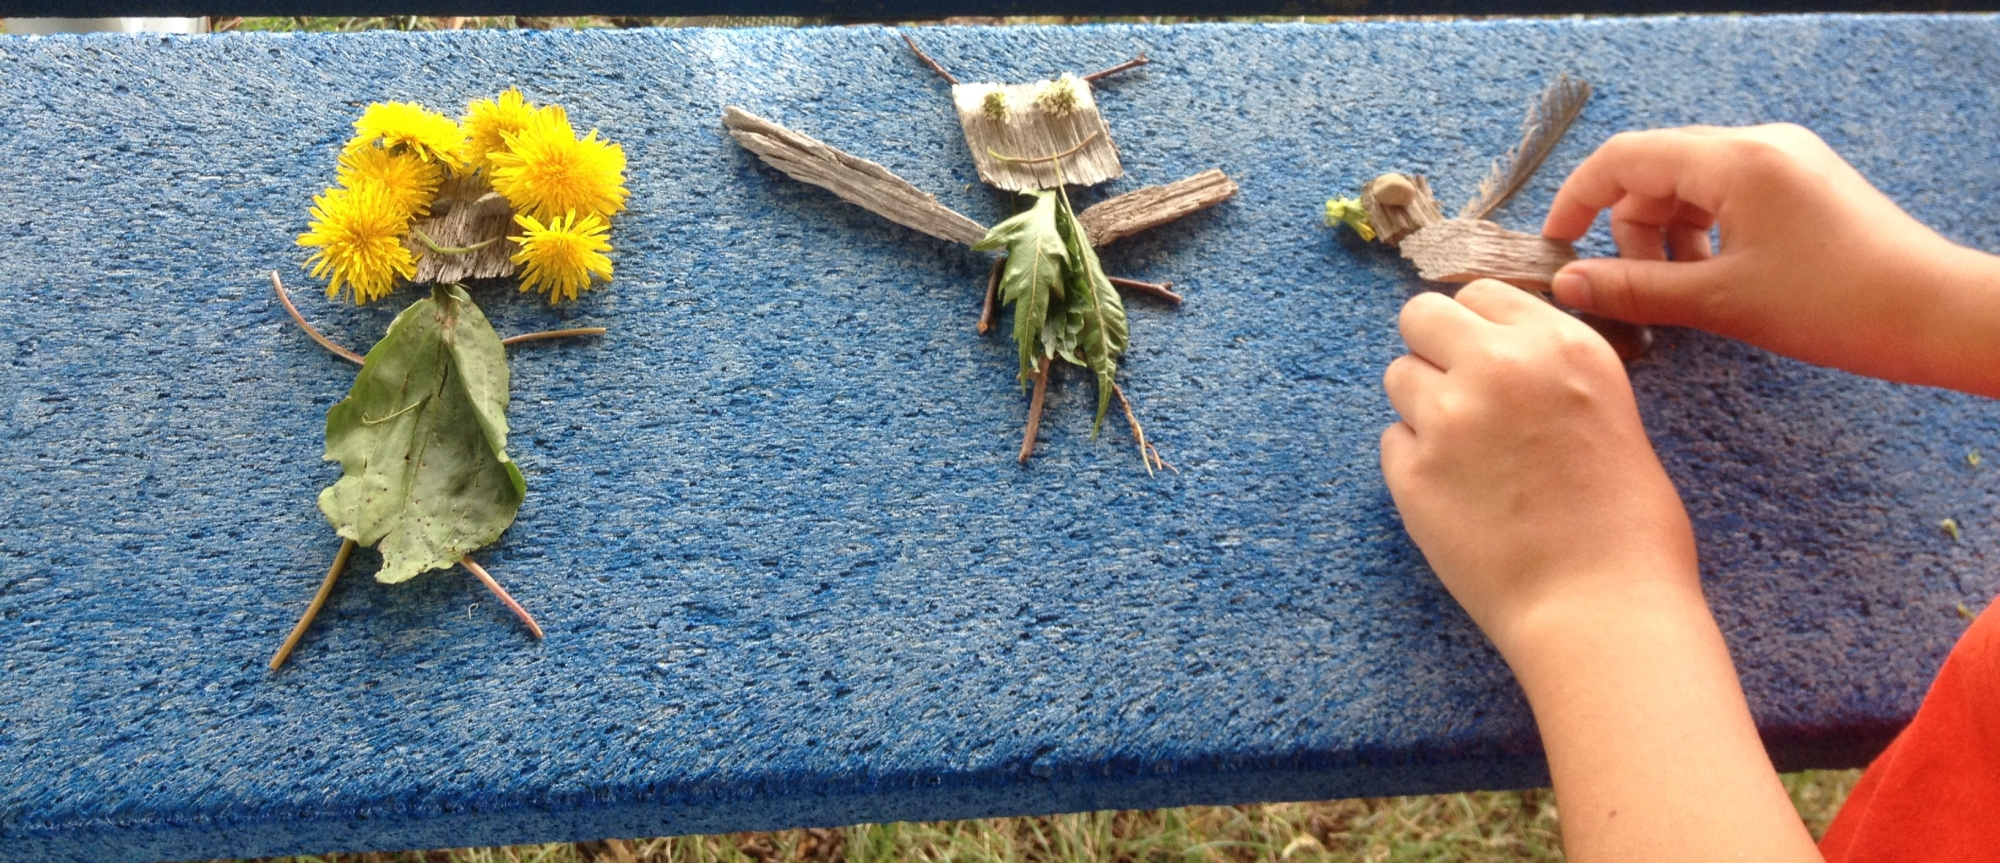 Hands seen puting together sticks and flowers into small dolls